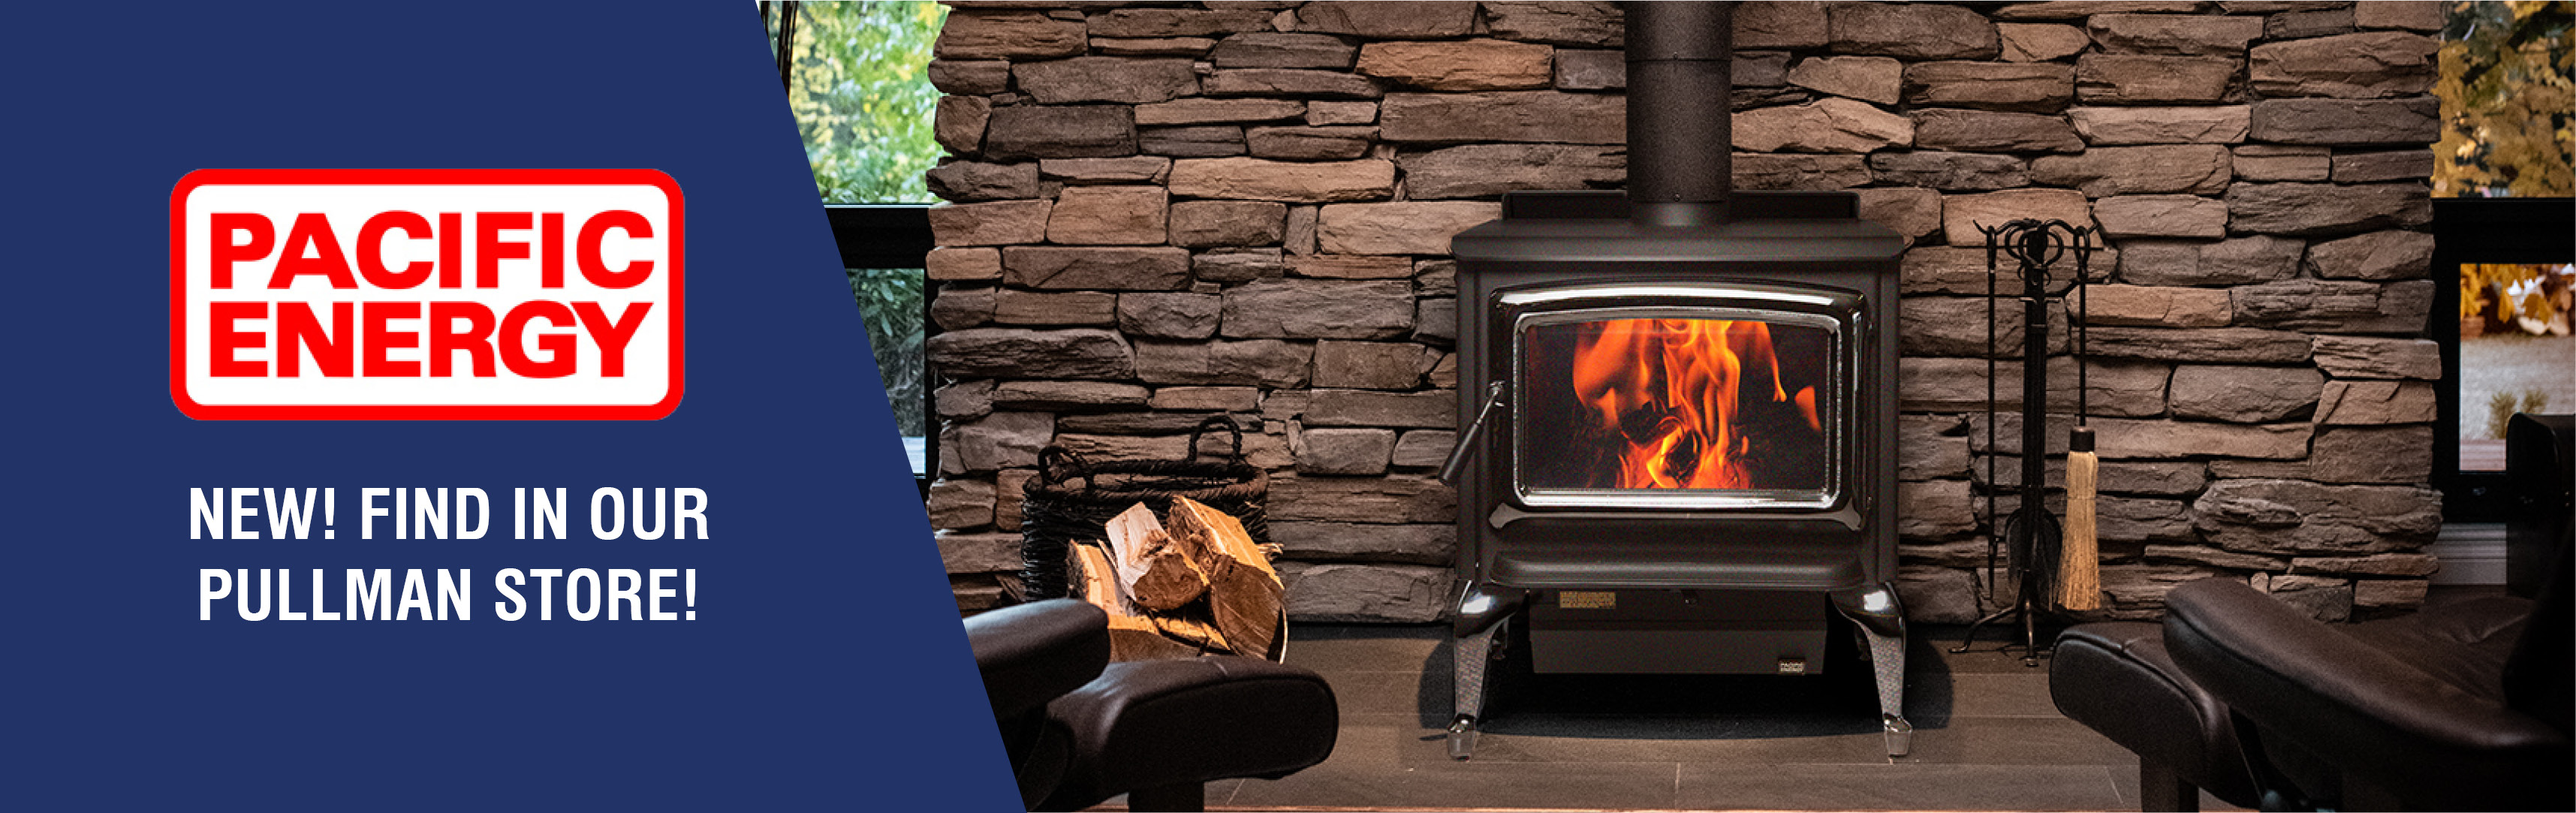 Stoves-Sliders-Pacific-Energy-LOW-RES4